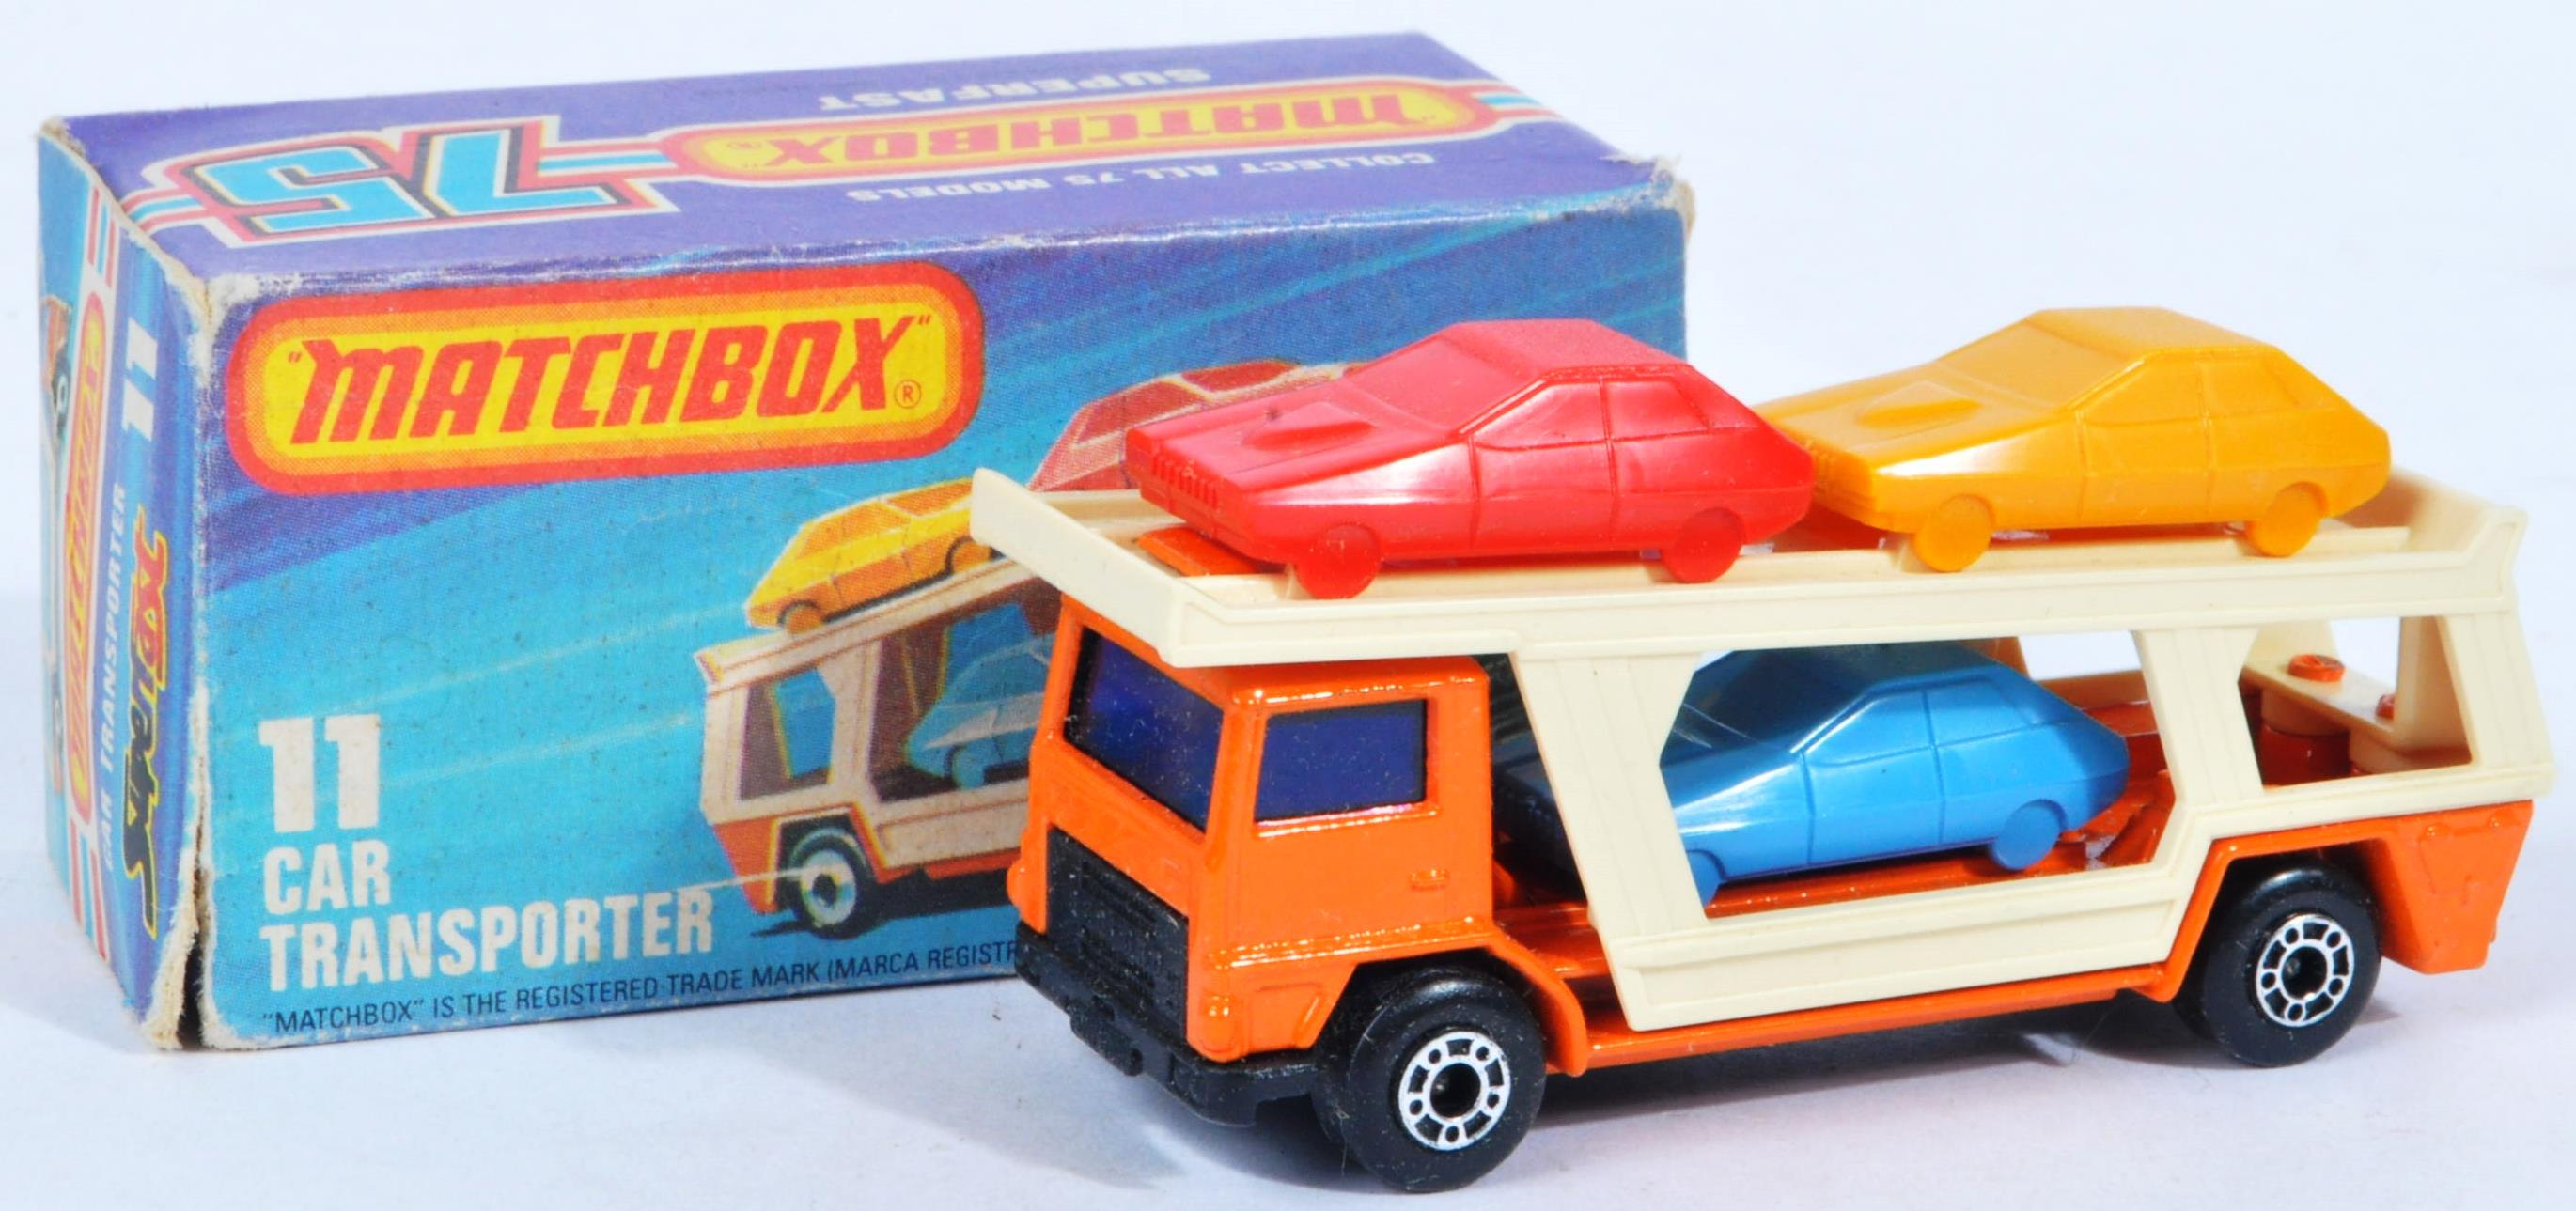 LARGE COLLECTION OF LESNEY MATCHBOX DIECAST MODELS - Image 7 of 8